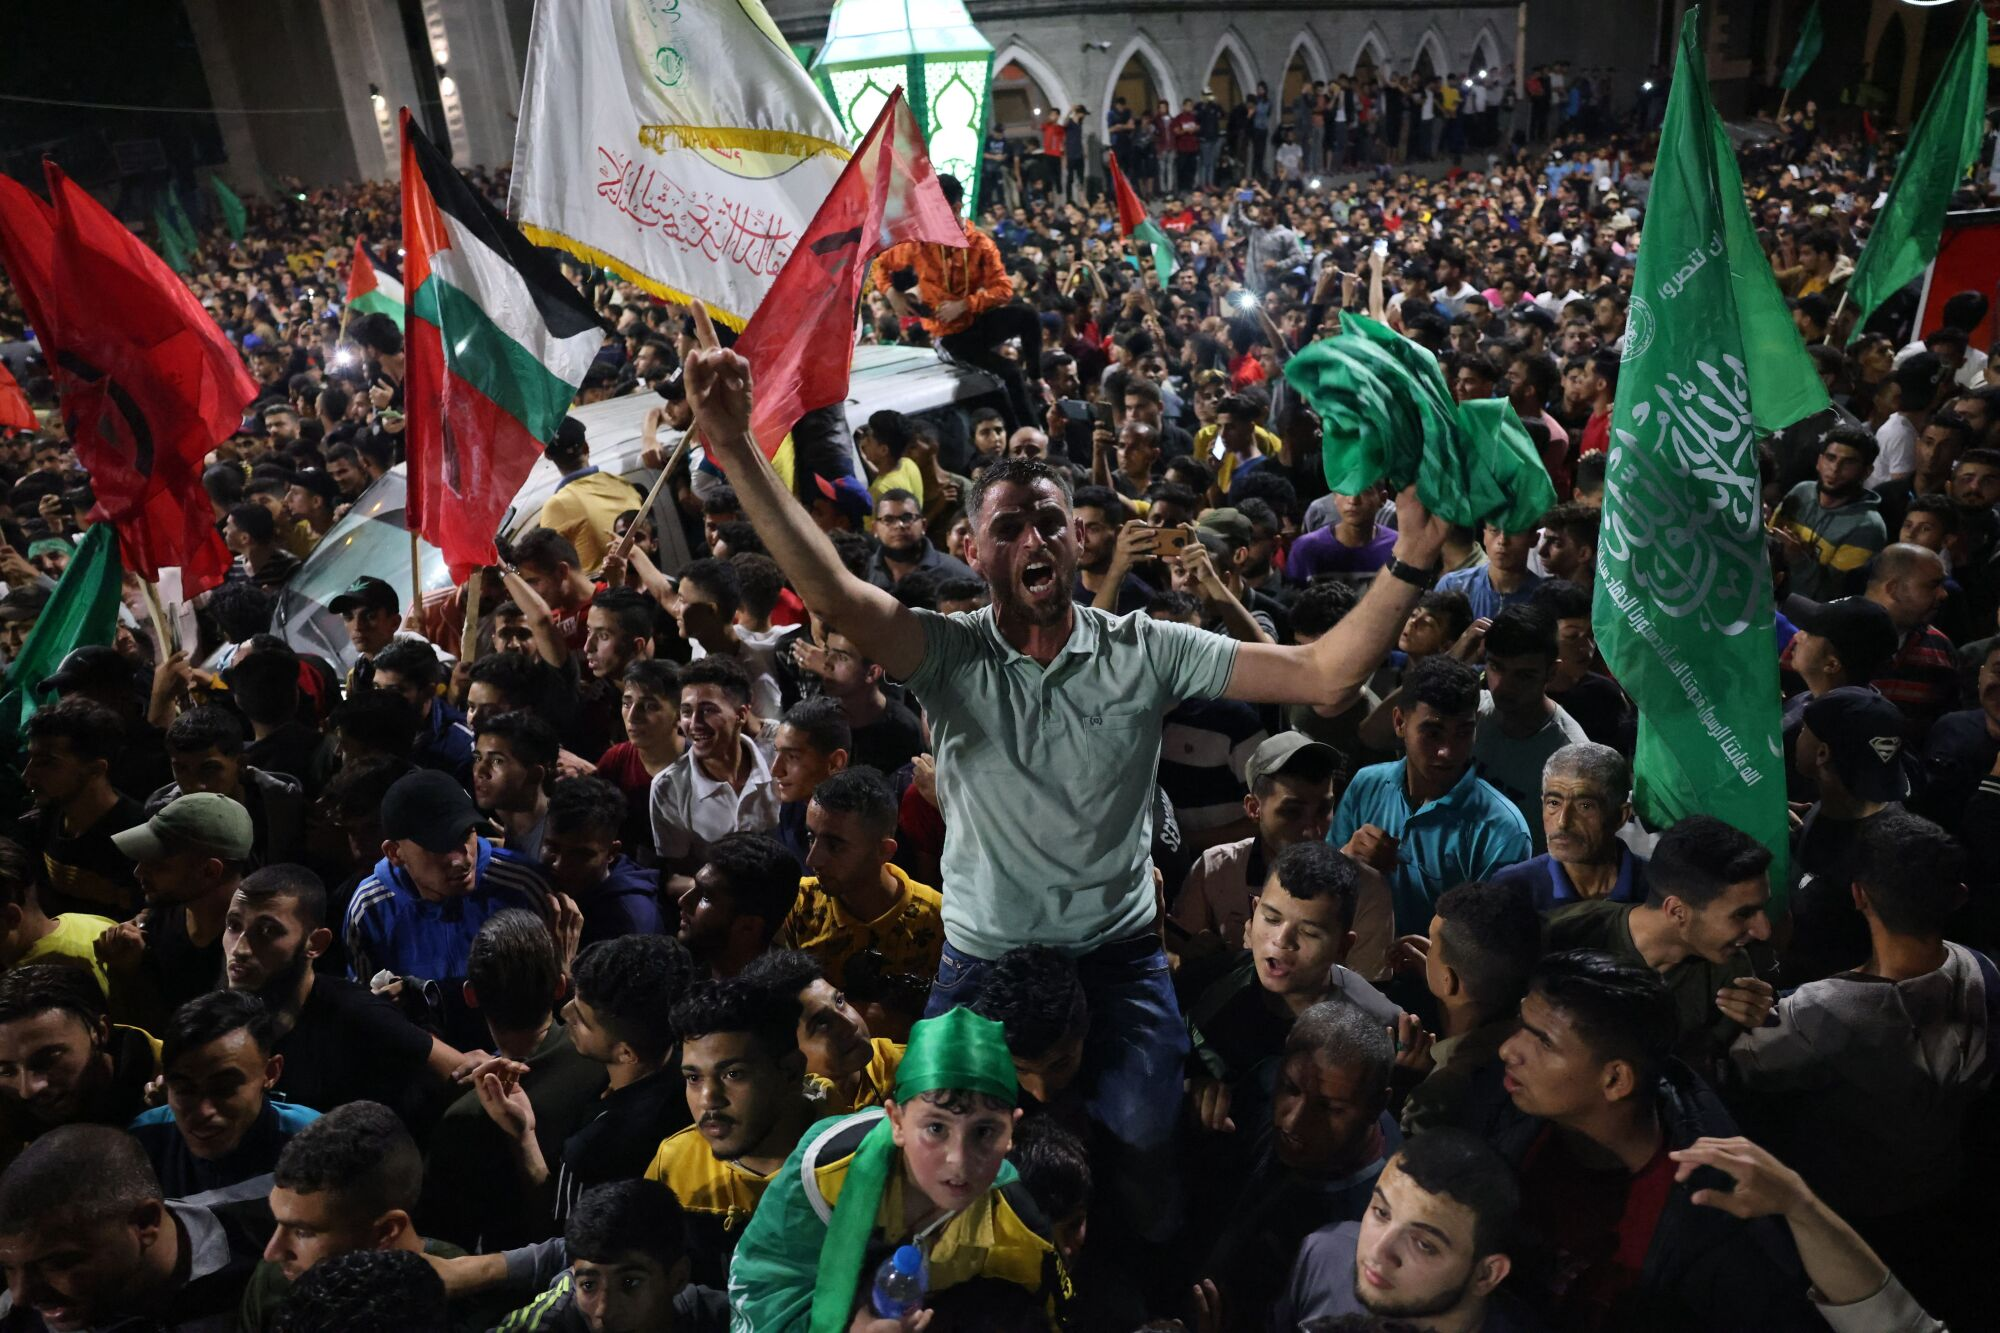 A man is hoisted on the shoulders of a celebrating crowd